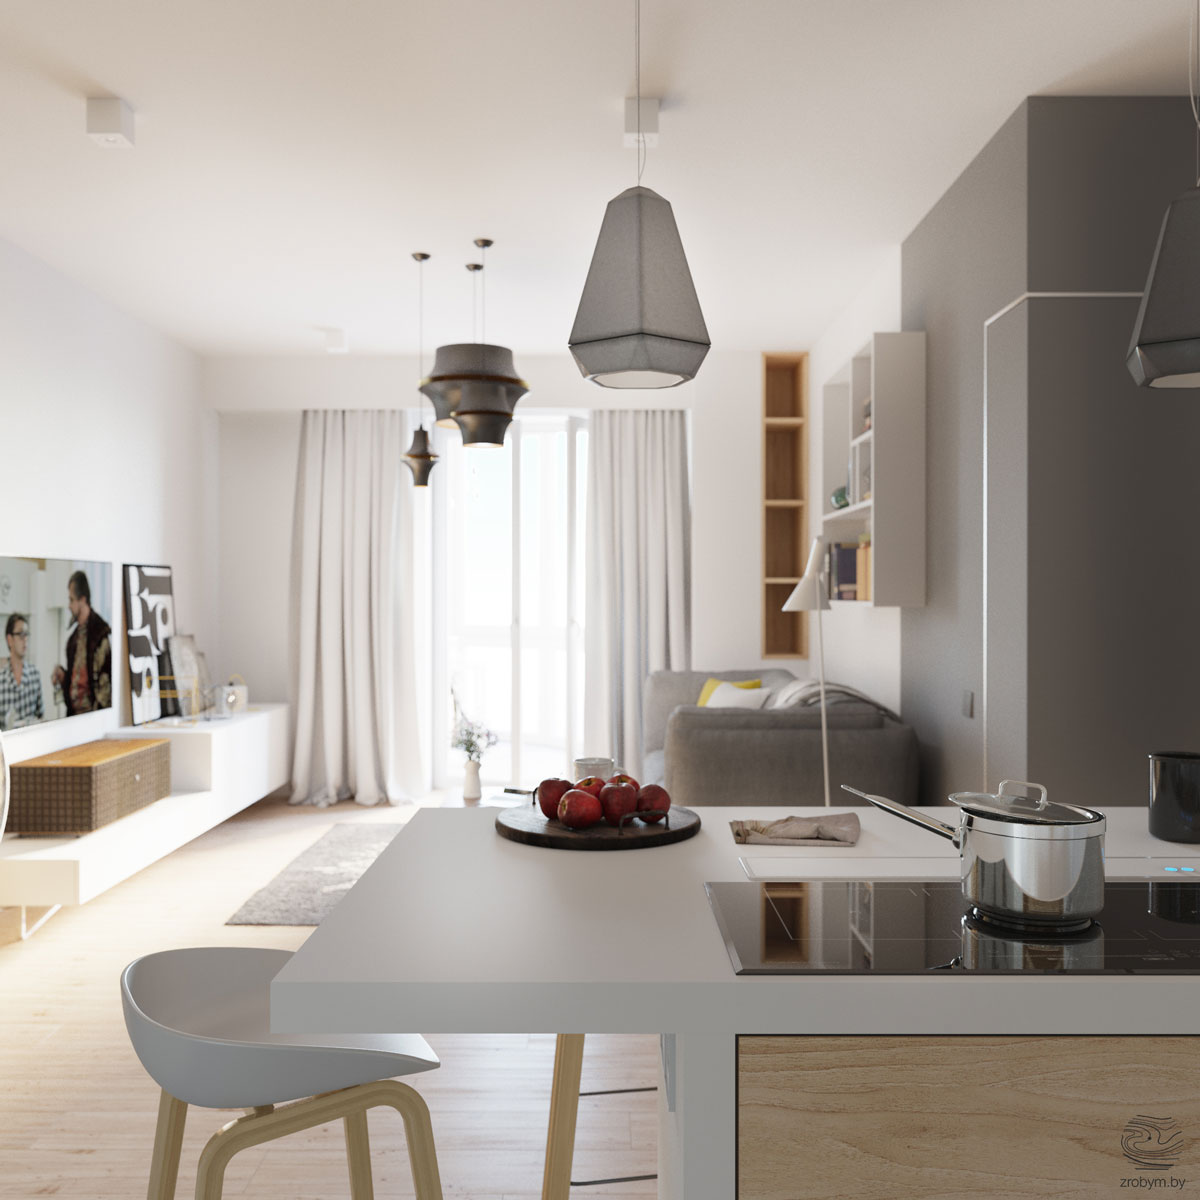 Burford Place Open Plan Kitchen With Breakfast Bar Island: Grey And Yellow Open Plan Small Apartment Tour